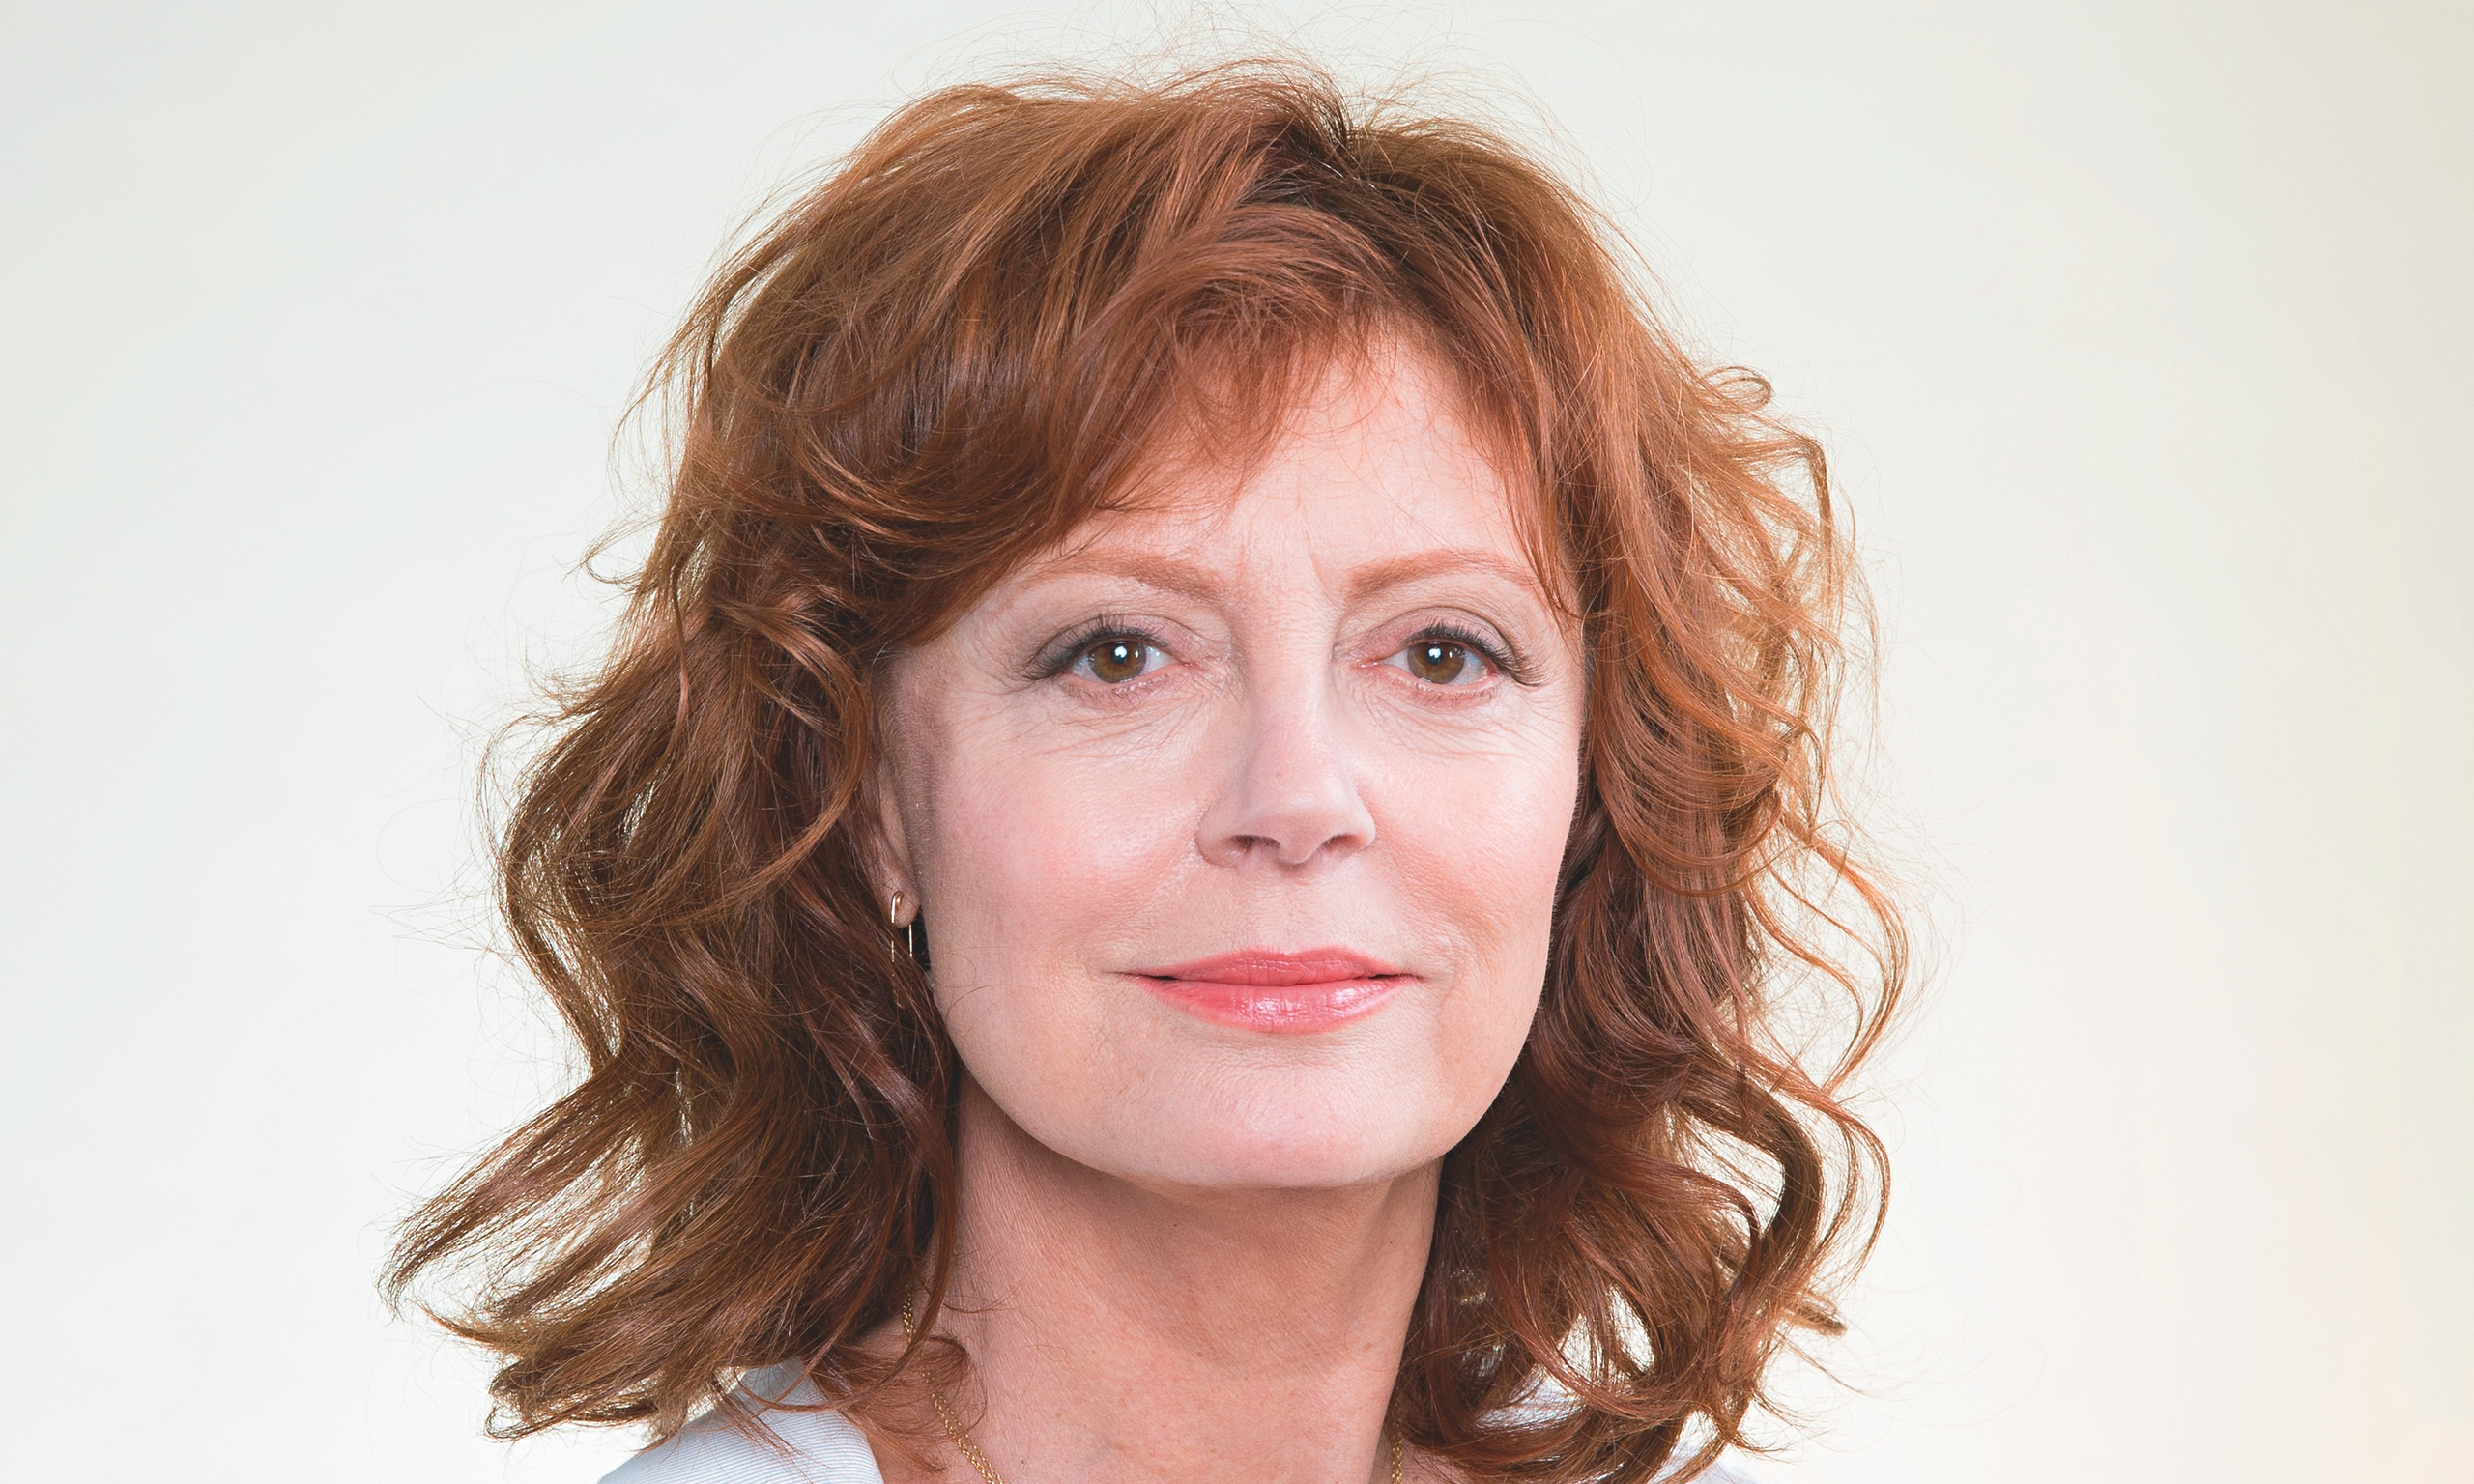 Susan Sarandon was born Susan Abigail Tomalin in New York City NY to Lenora Marie Criscione no profession and Phillip Leslie Tomalin an